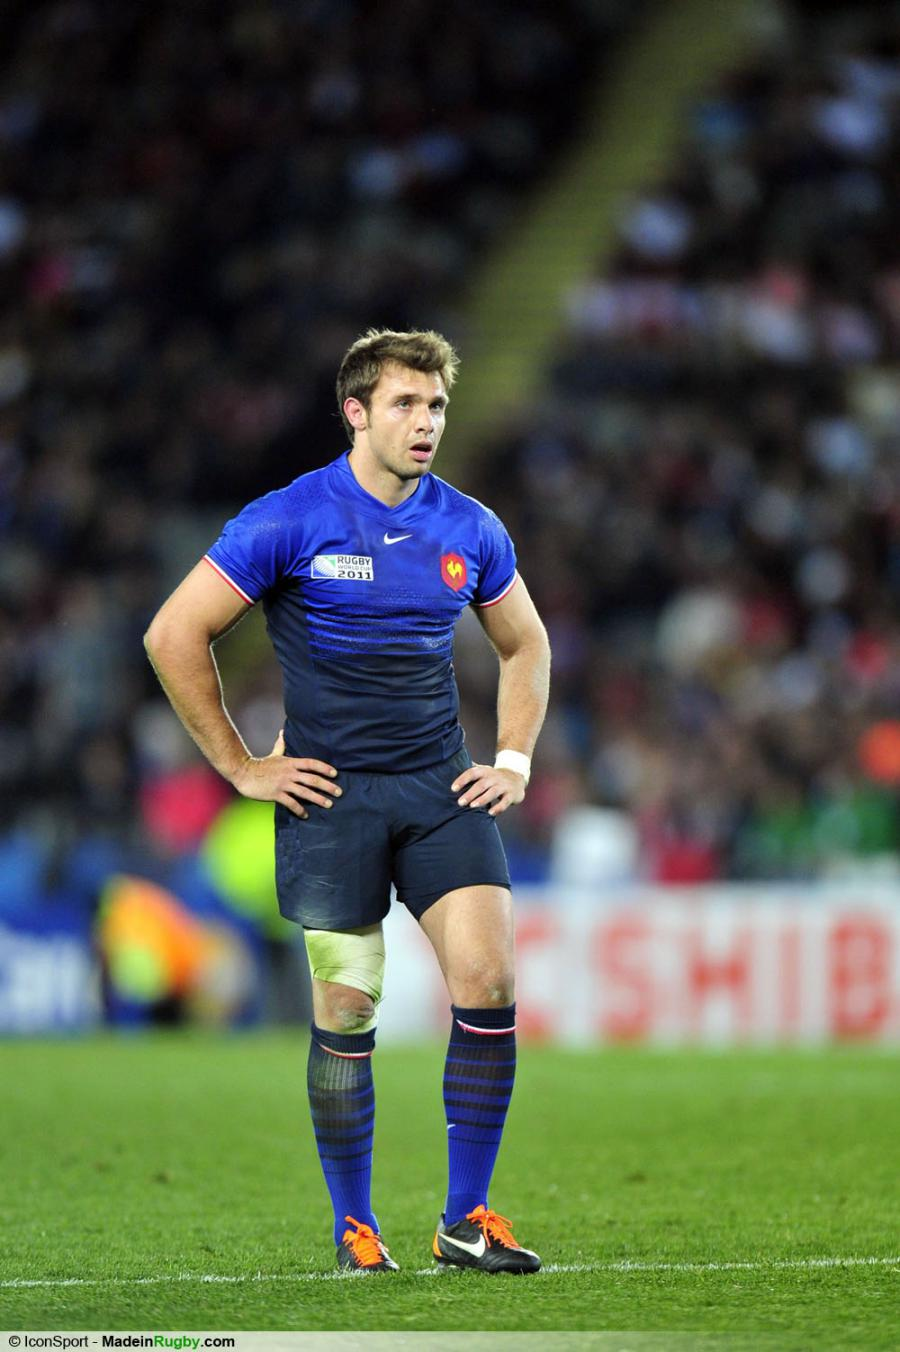 Photos foot vincent clerc angleterre france 1 4 finale coupe du monde de - Finale coupe du monde rugby 2011 ...